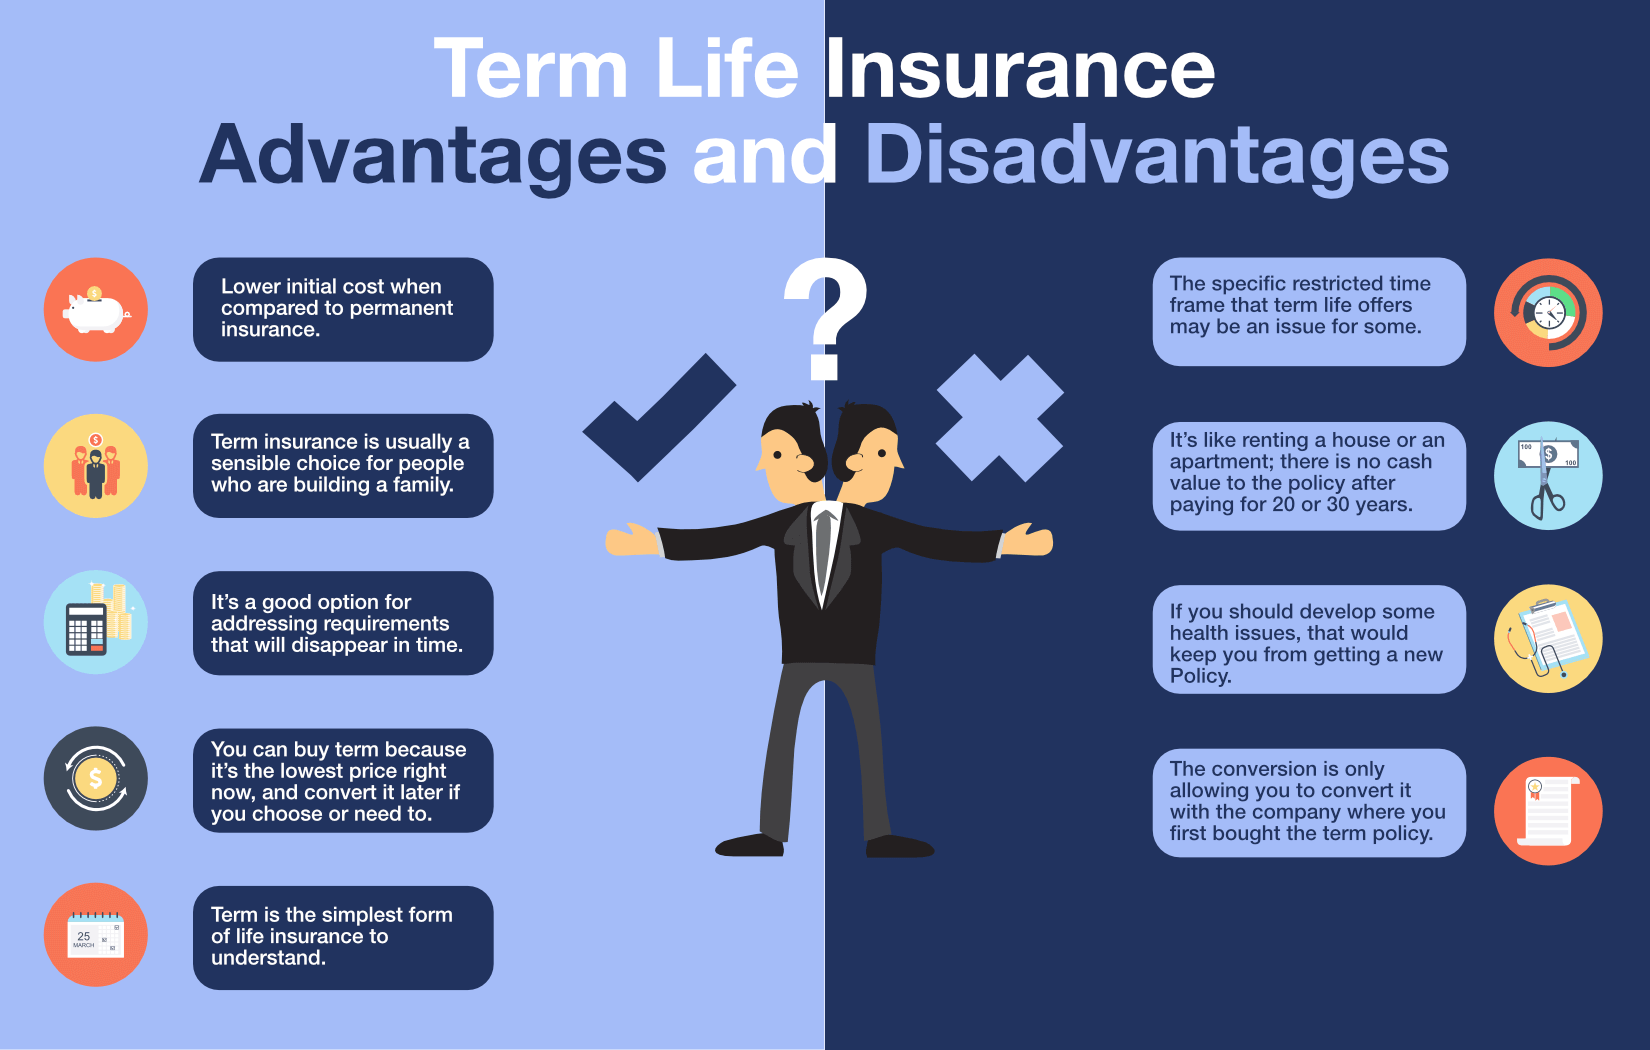 Term Life Insurance Advantages and Disadvantages | Effortless Insurance